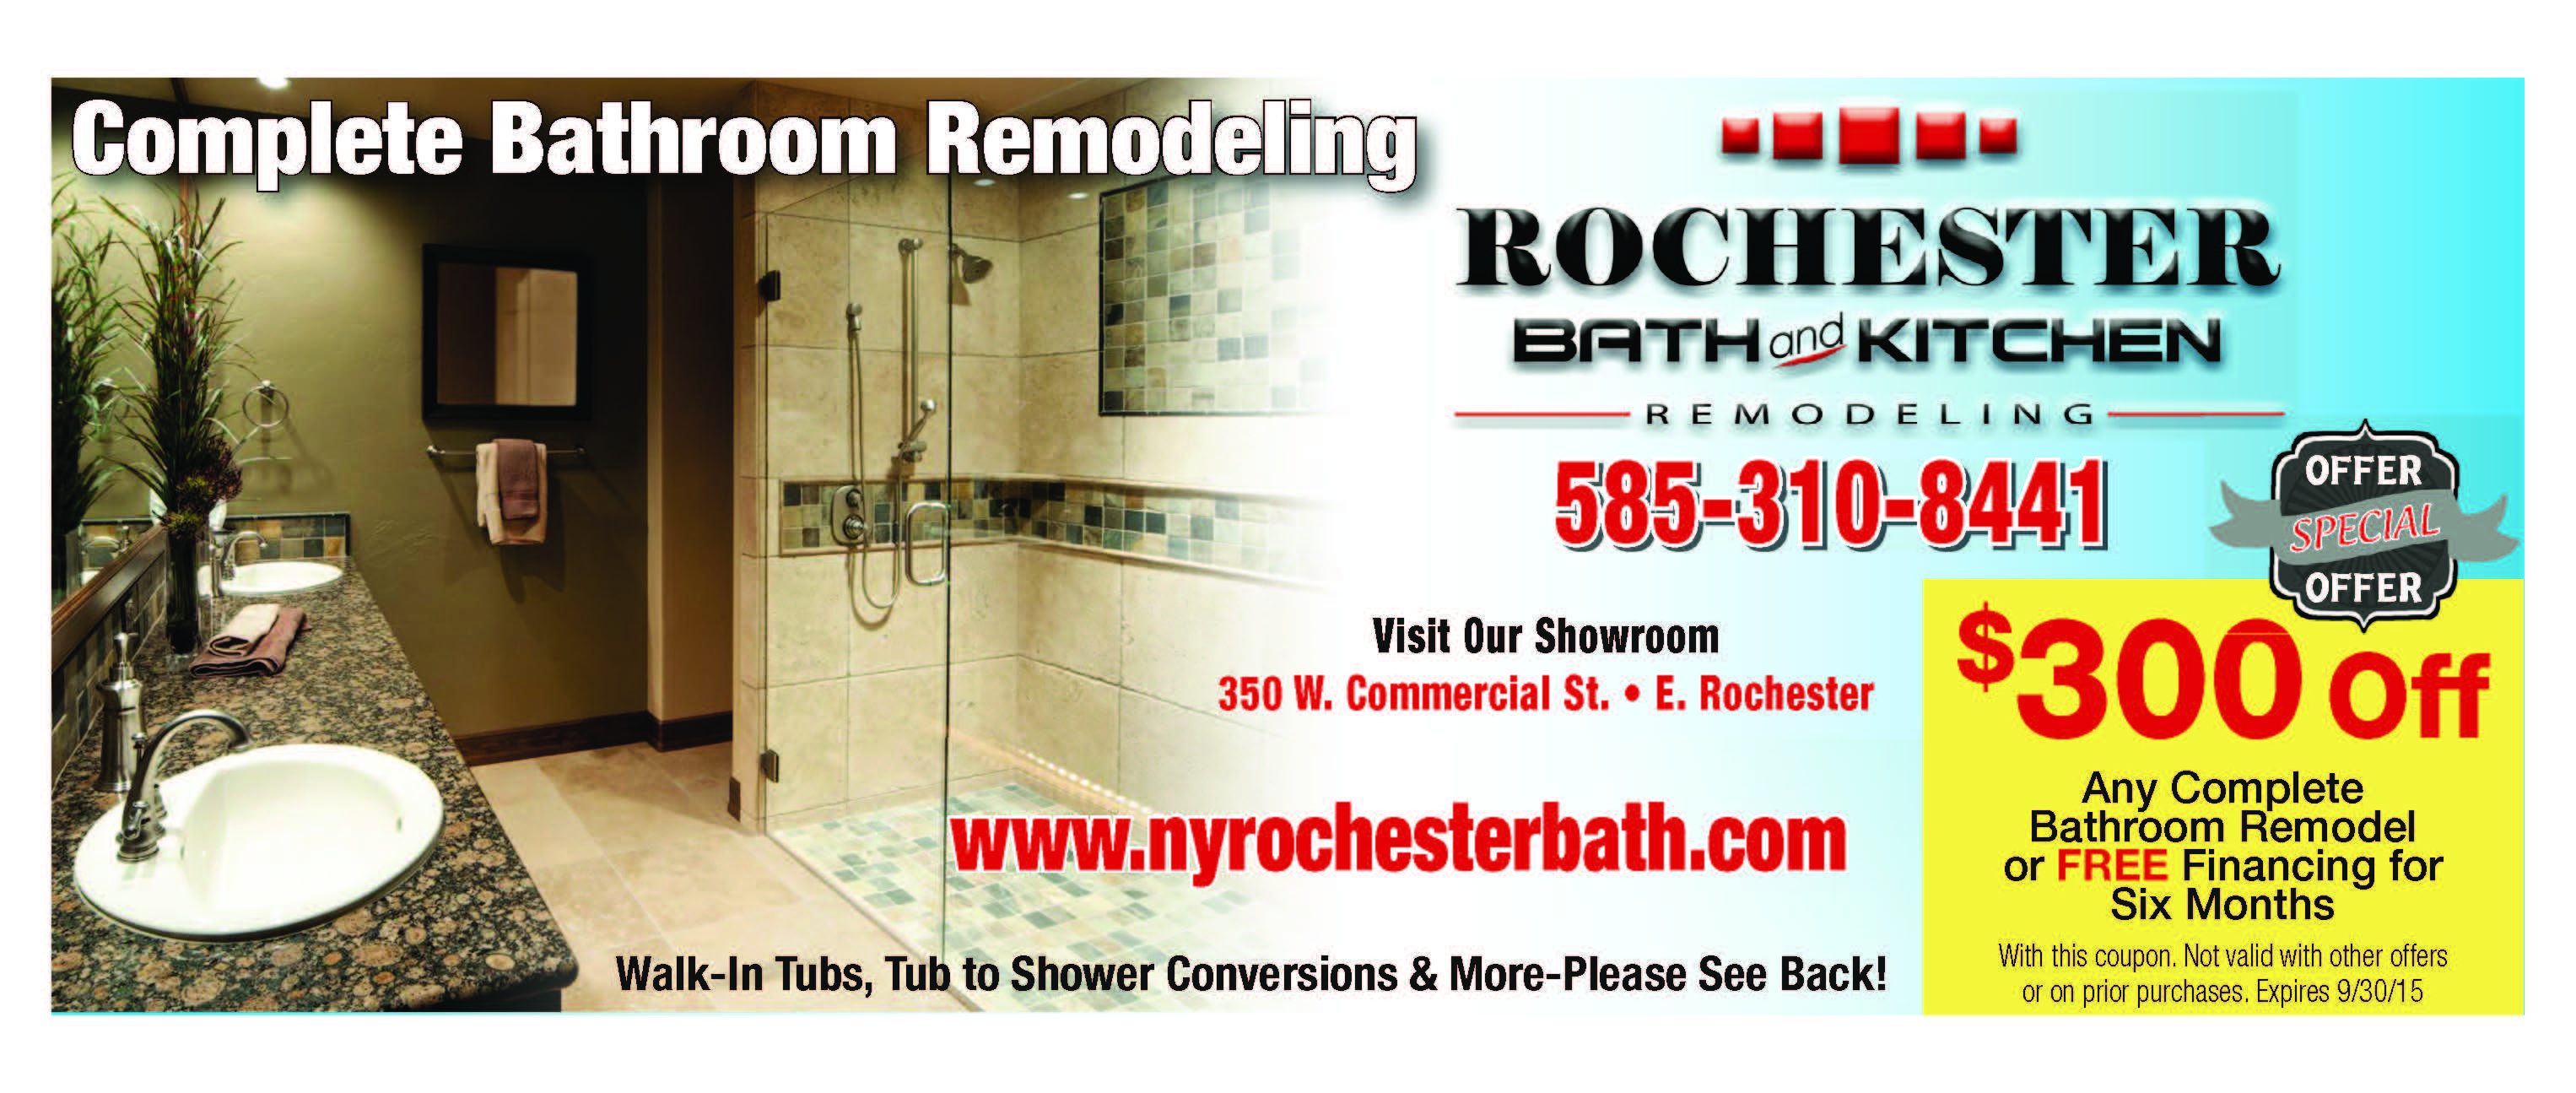 Rochester Bath And Kitchen Remodeling Coupons And Specials.  Www.nyrochesterbath.com East Rochester